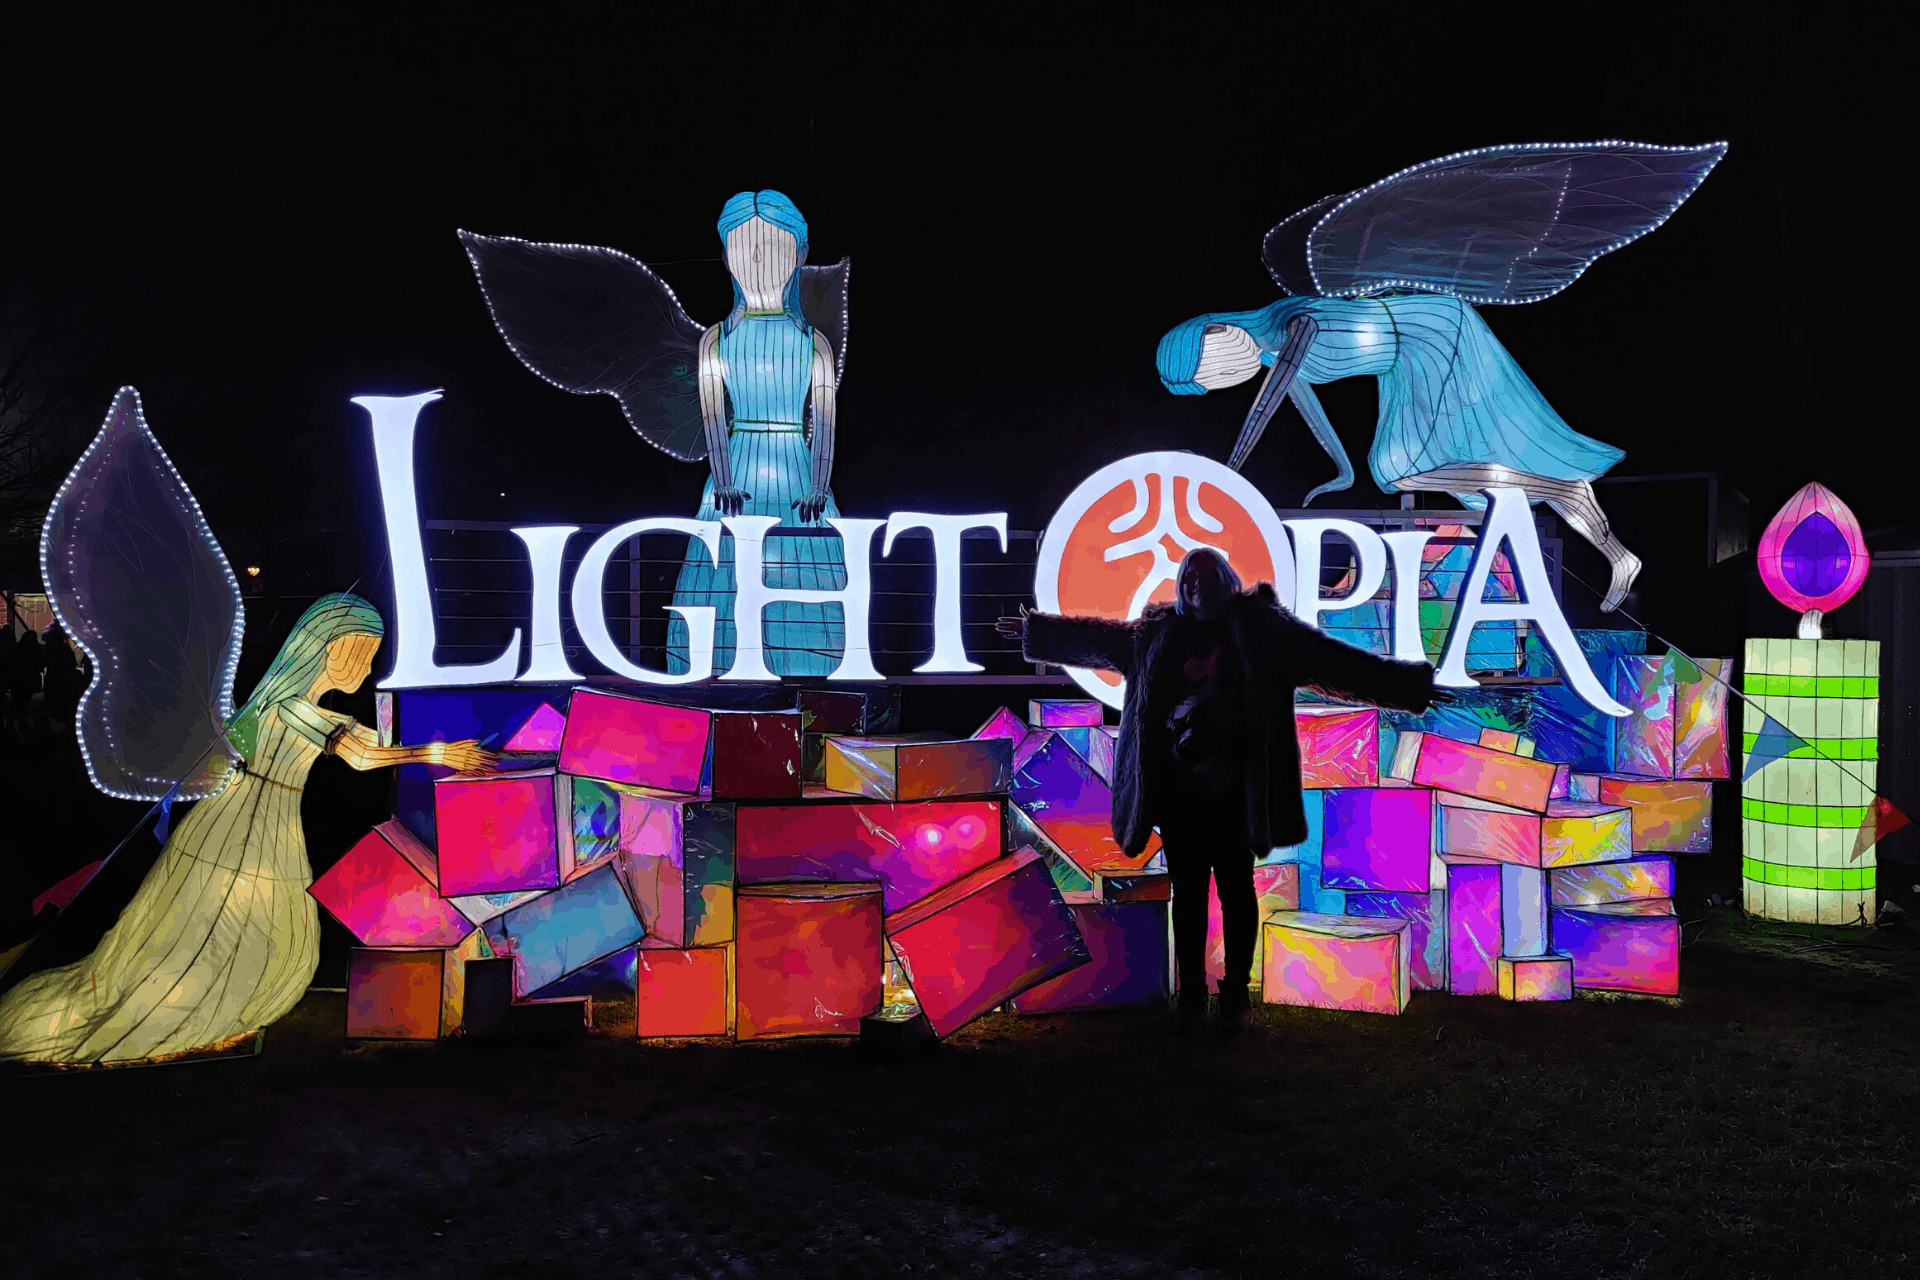 A picture of me (Claire!) at the entrance to Lightopia festival at Chiswick House